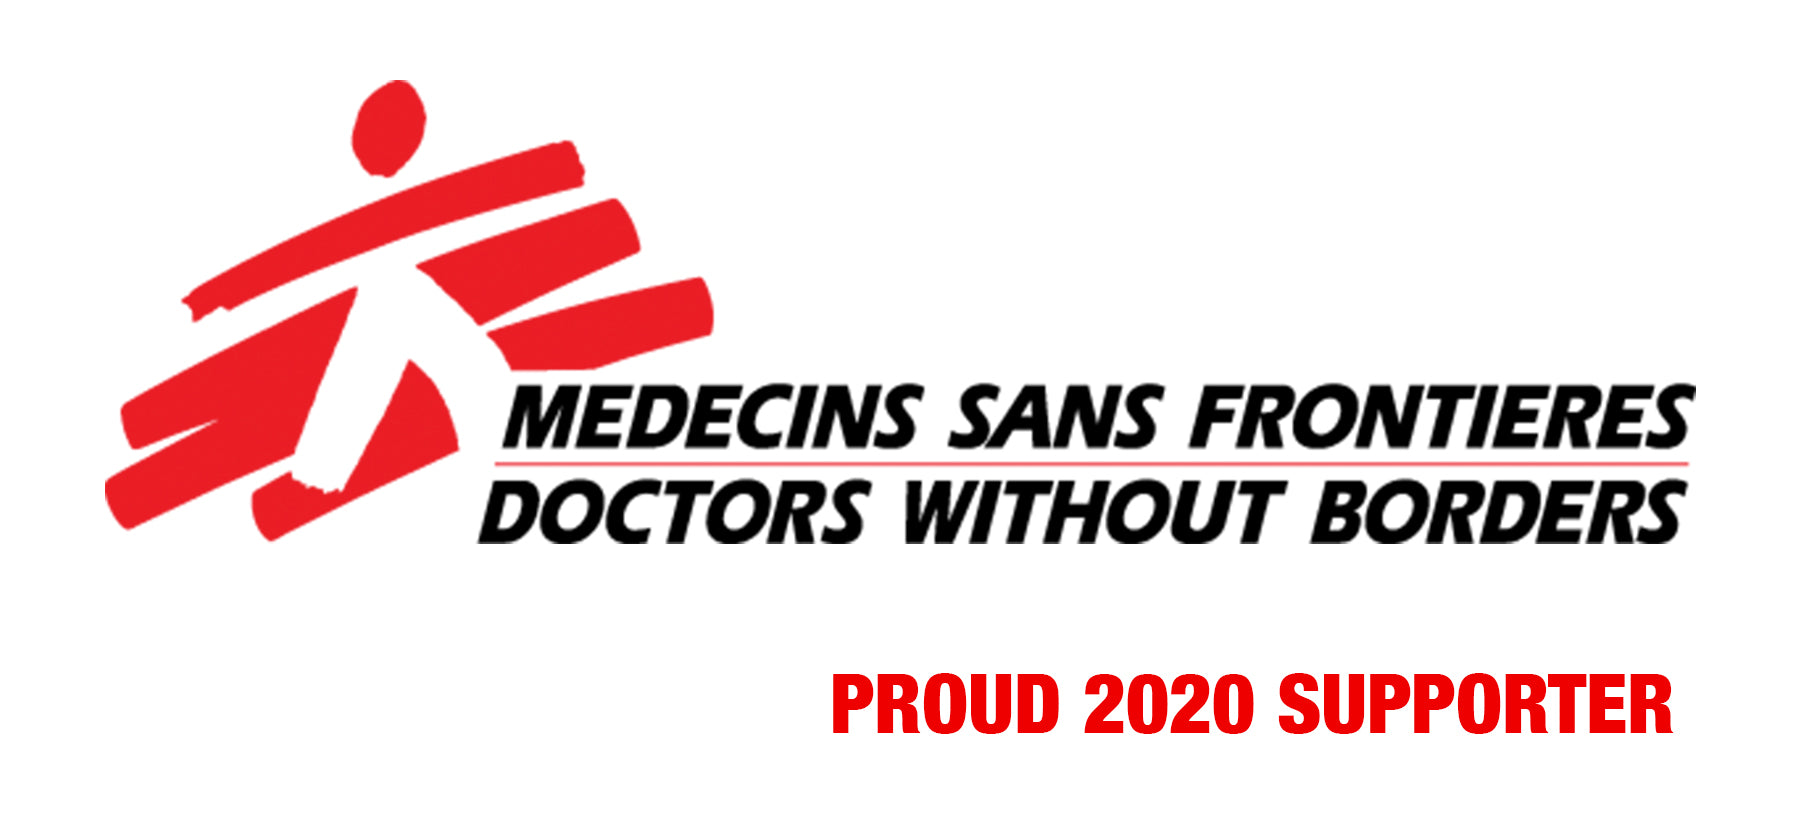 Doctors Without Borders - Proud 2020 Supporter